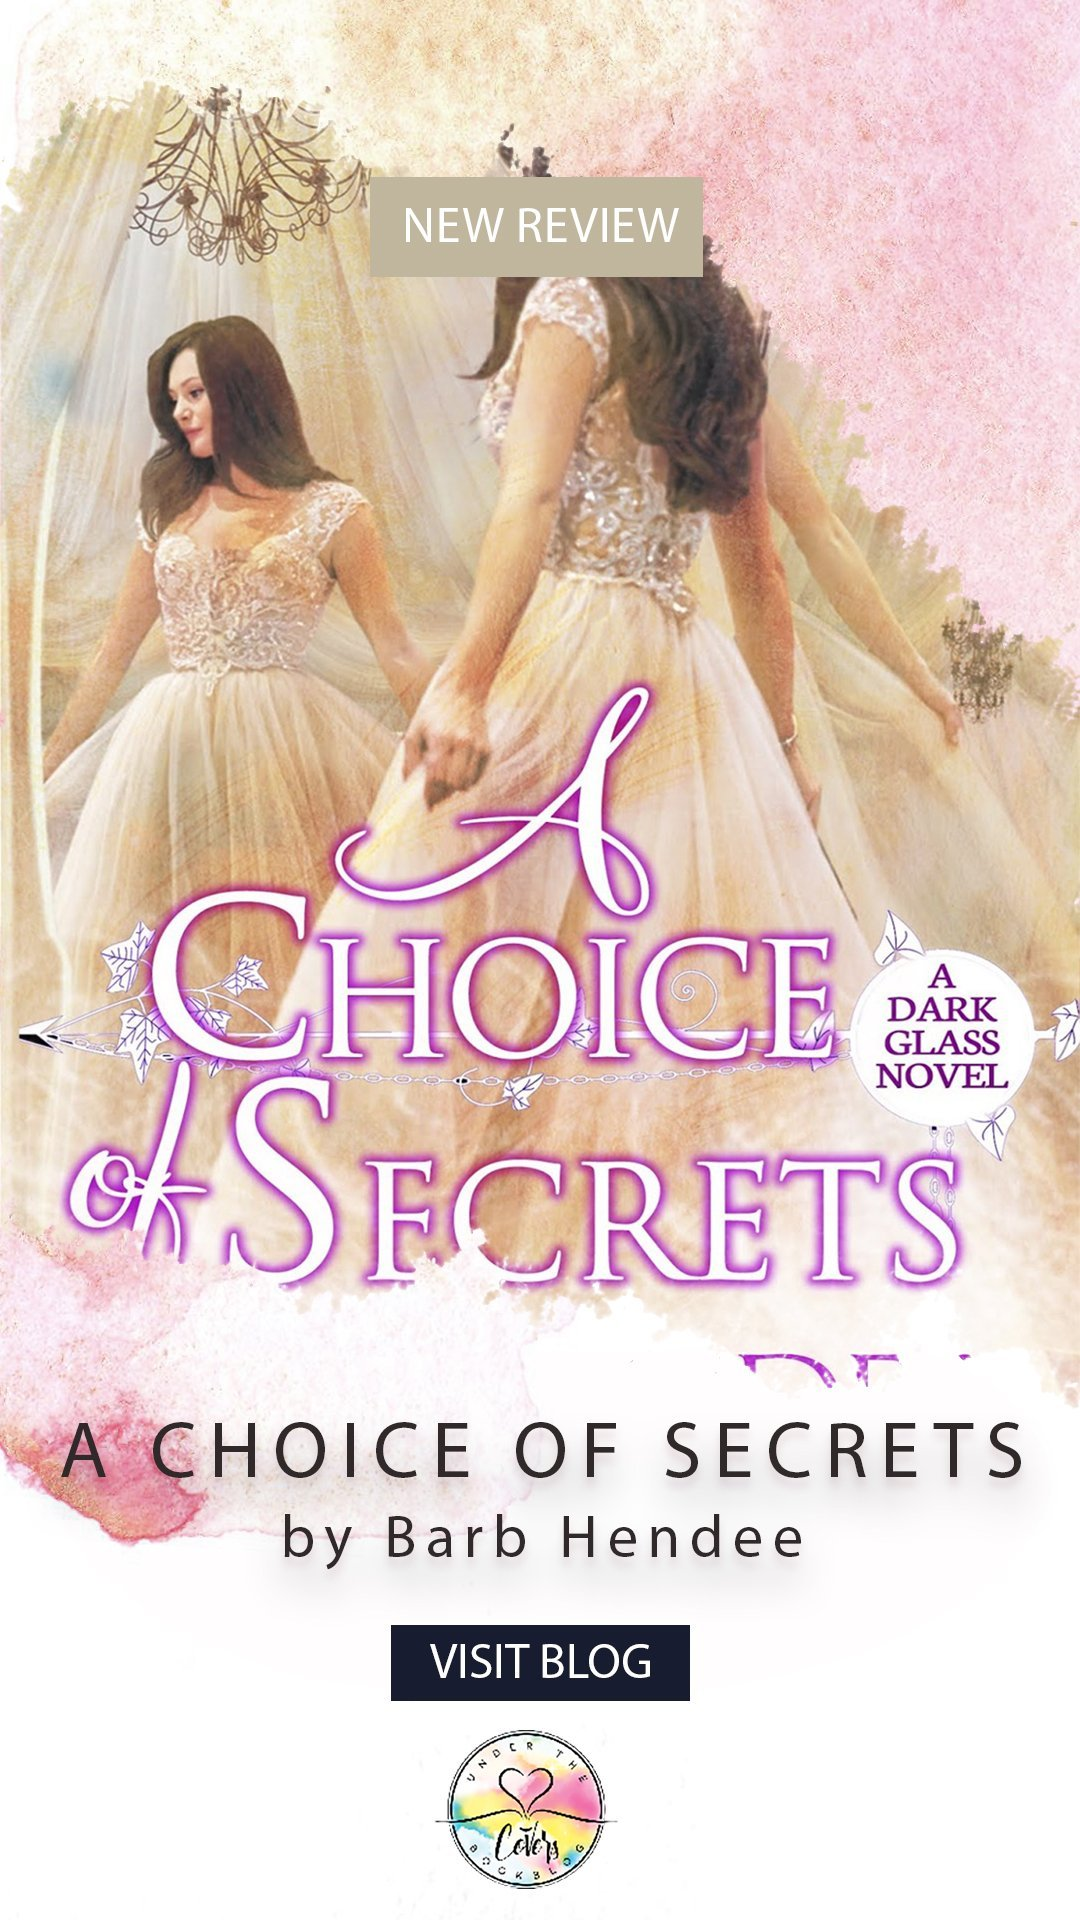 ARC Review: A Choice of Secrets by Barb Hendee